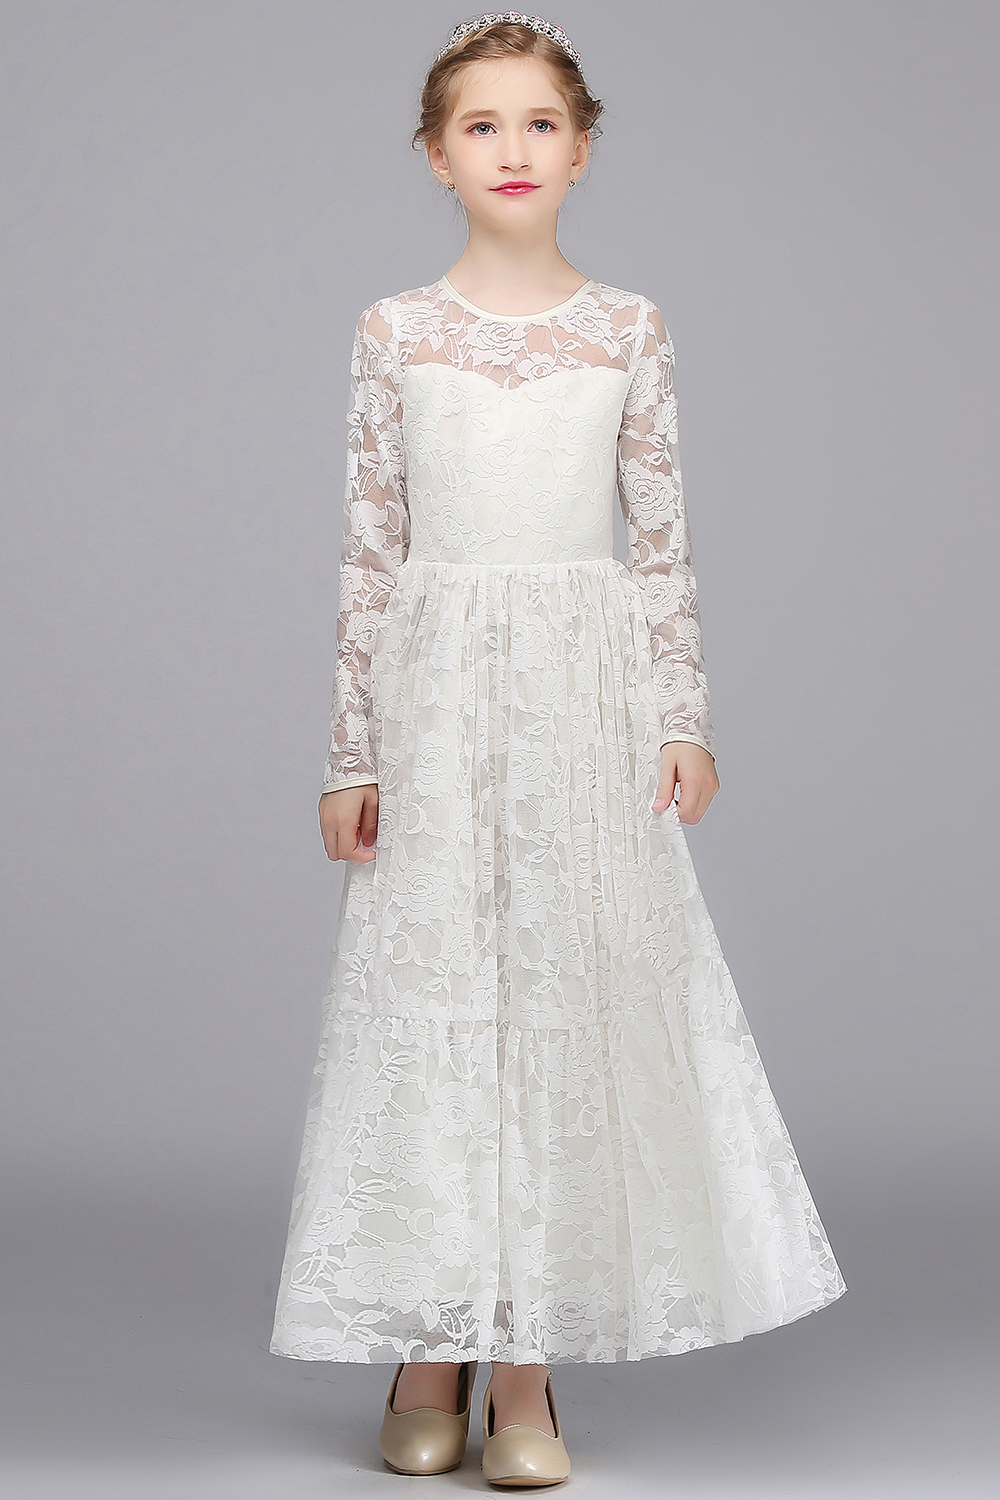 White Flower Girls Dresses For Wedding Sleeveless Lace First Communion Dresses Kids Evening Gowns Tulle Mother Daughter Dresses